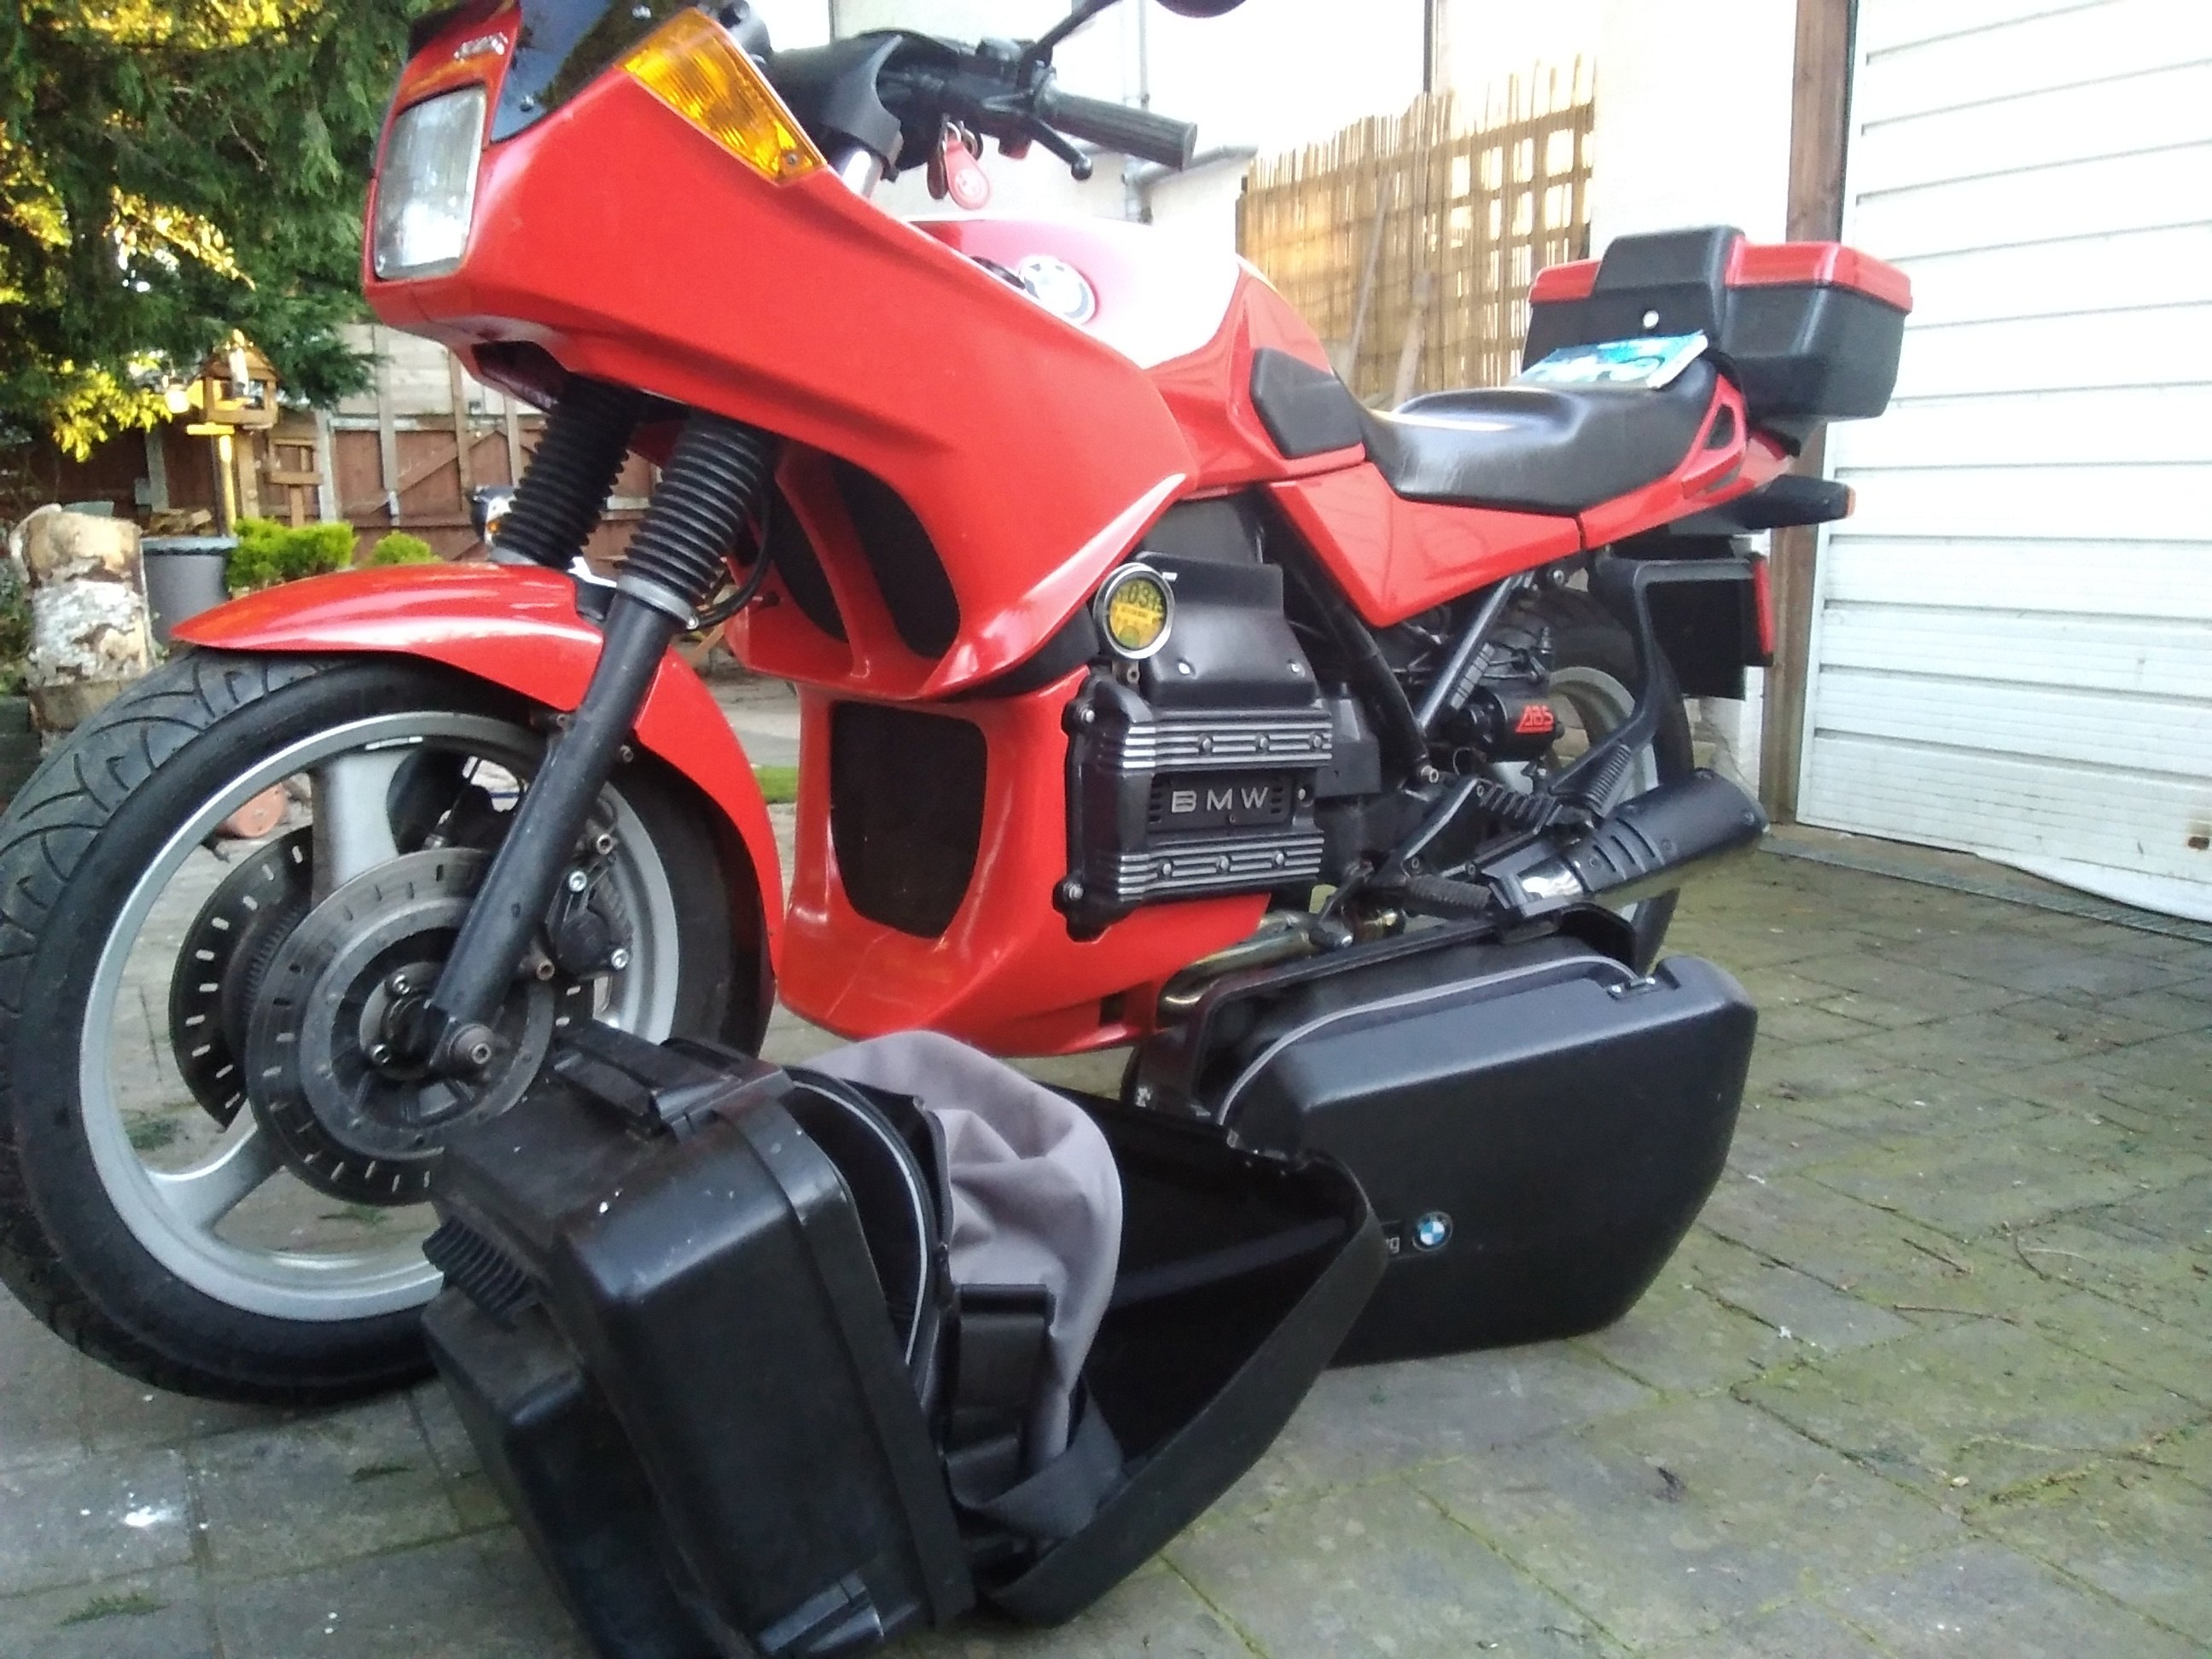 BMW K75S red touring motorcycle